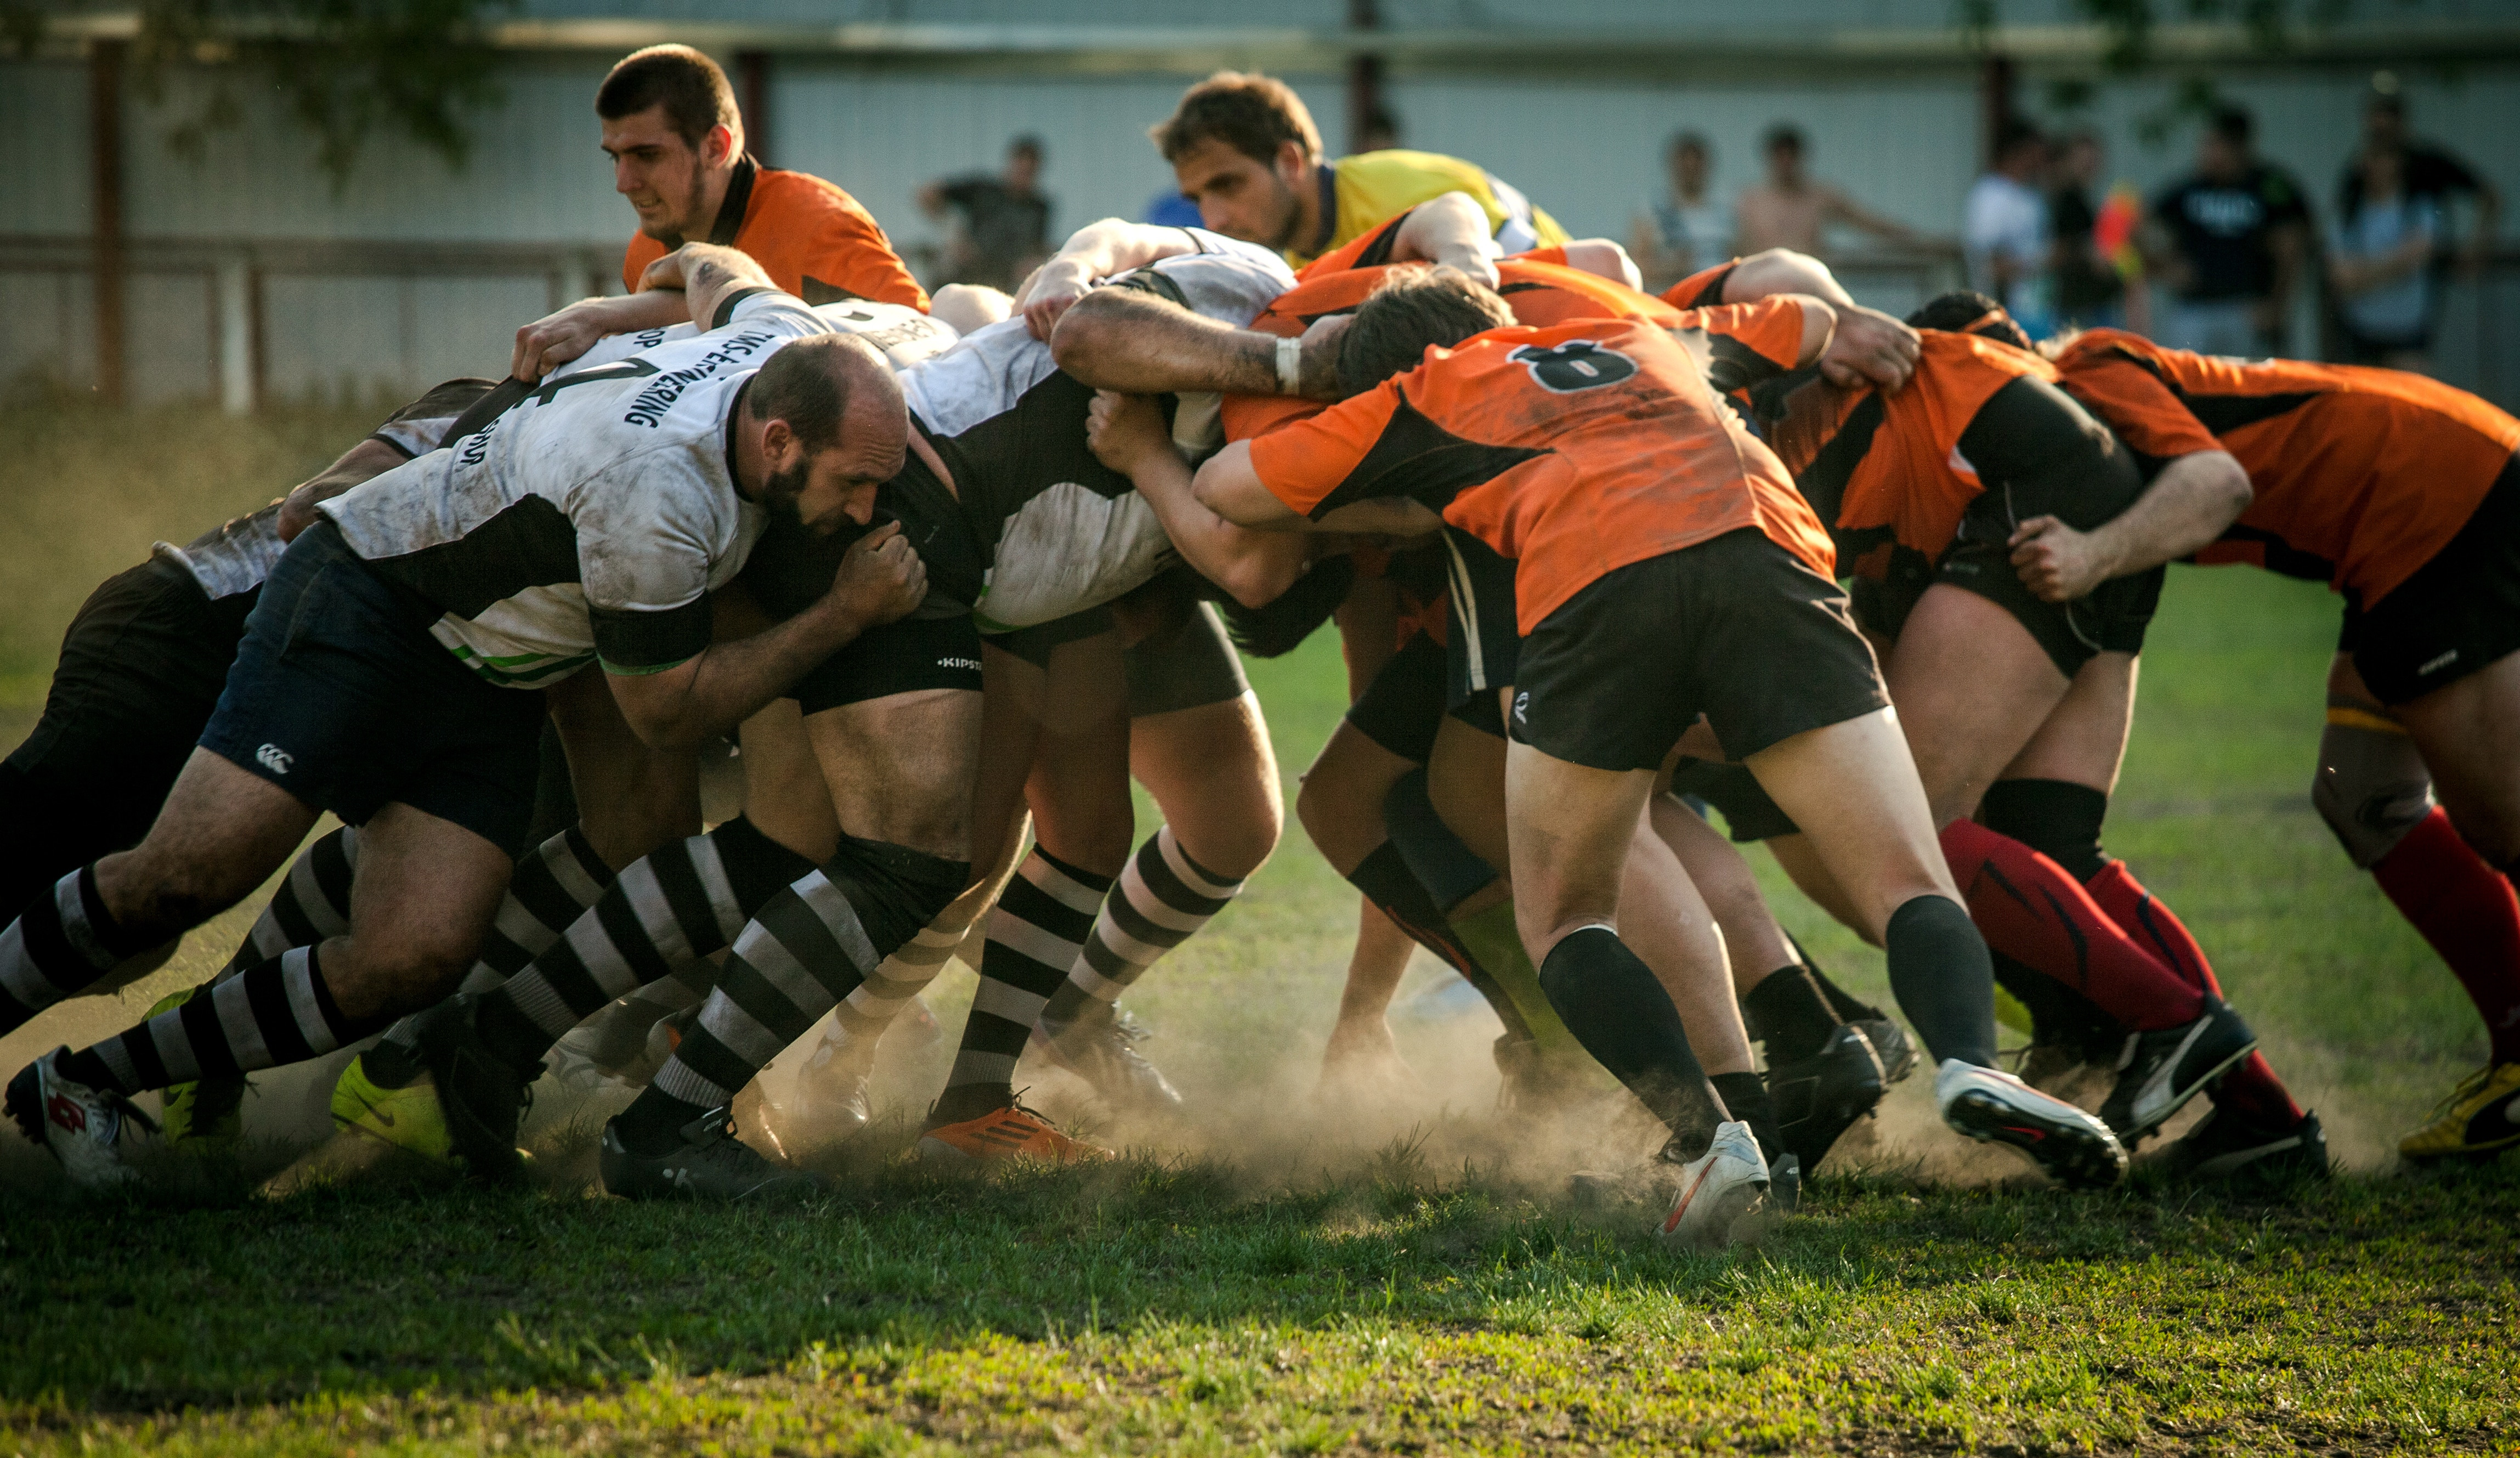 rugby, block